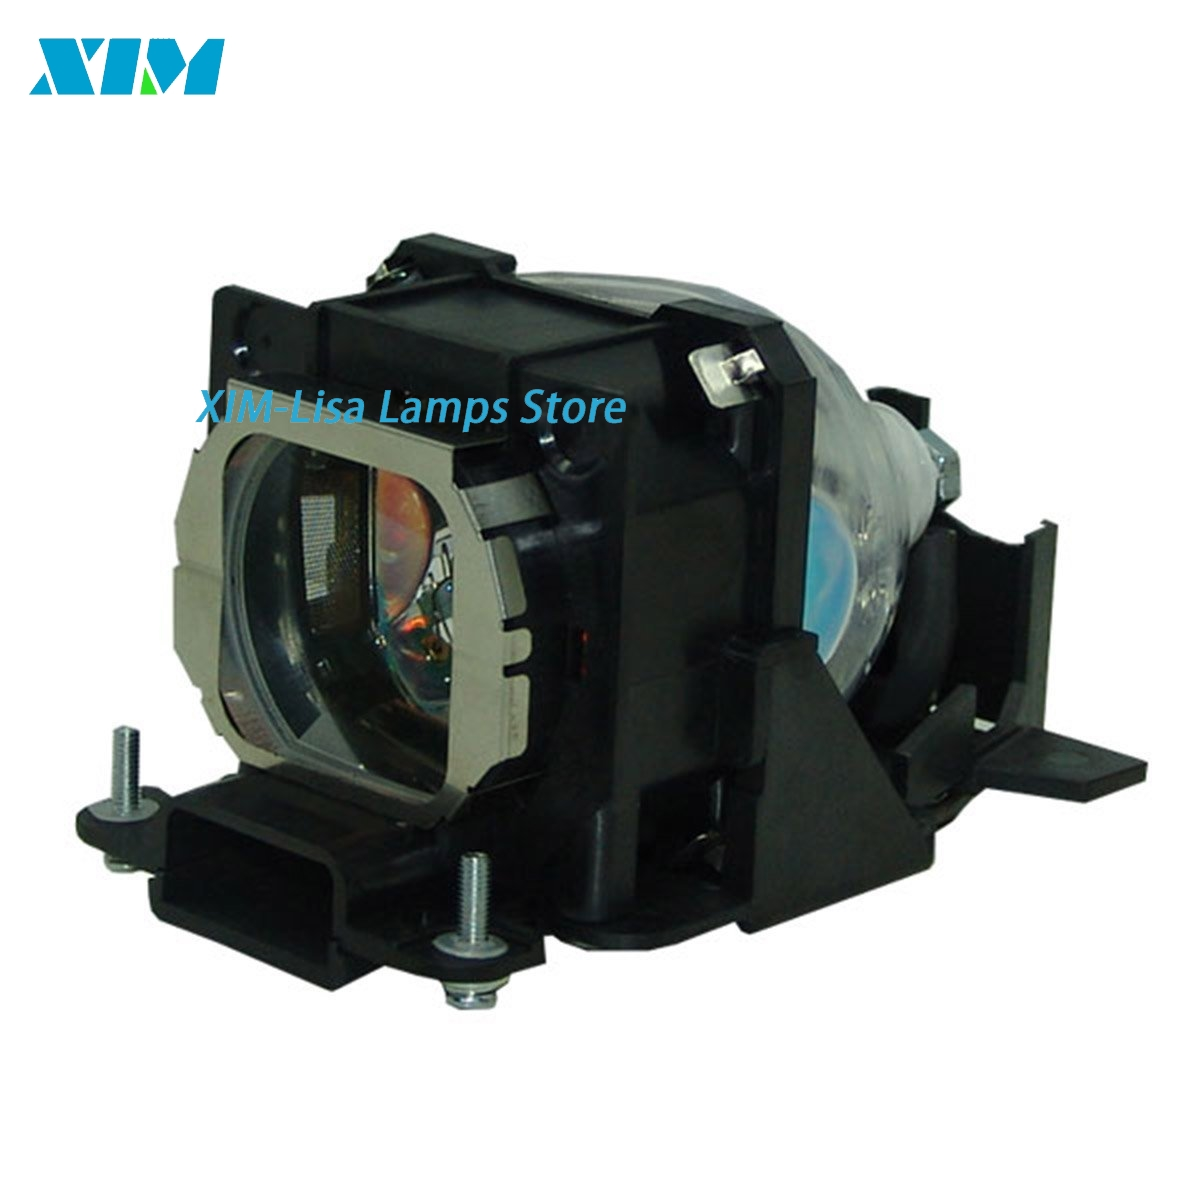 Free Shipping High Brighness ET-LAB10 Projector Lamp with Housing For PANASONIC PT-LB10E PT-LB10NT PT-LB10S LB10V projectors original projector lamp et lab80 for pt lb75 pt lb75nt pt lb80 pt lw80nt pt lb75ntu pt lb75u pt lb80u